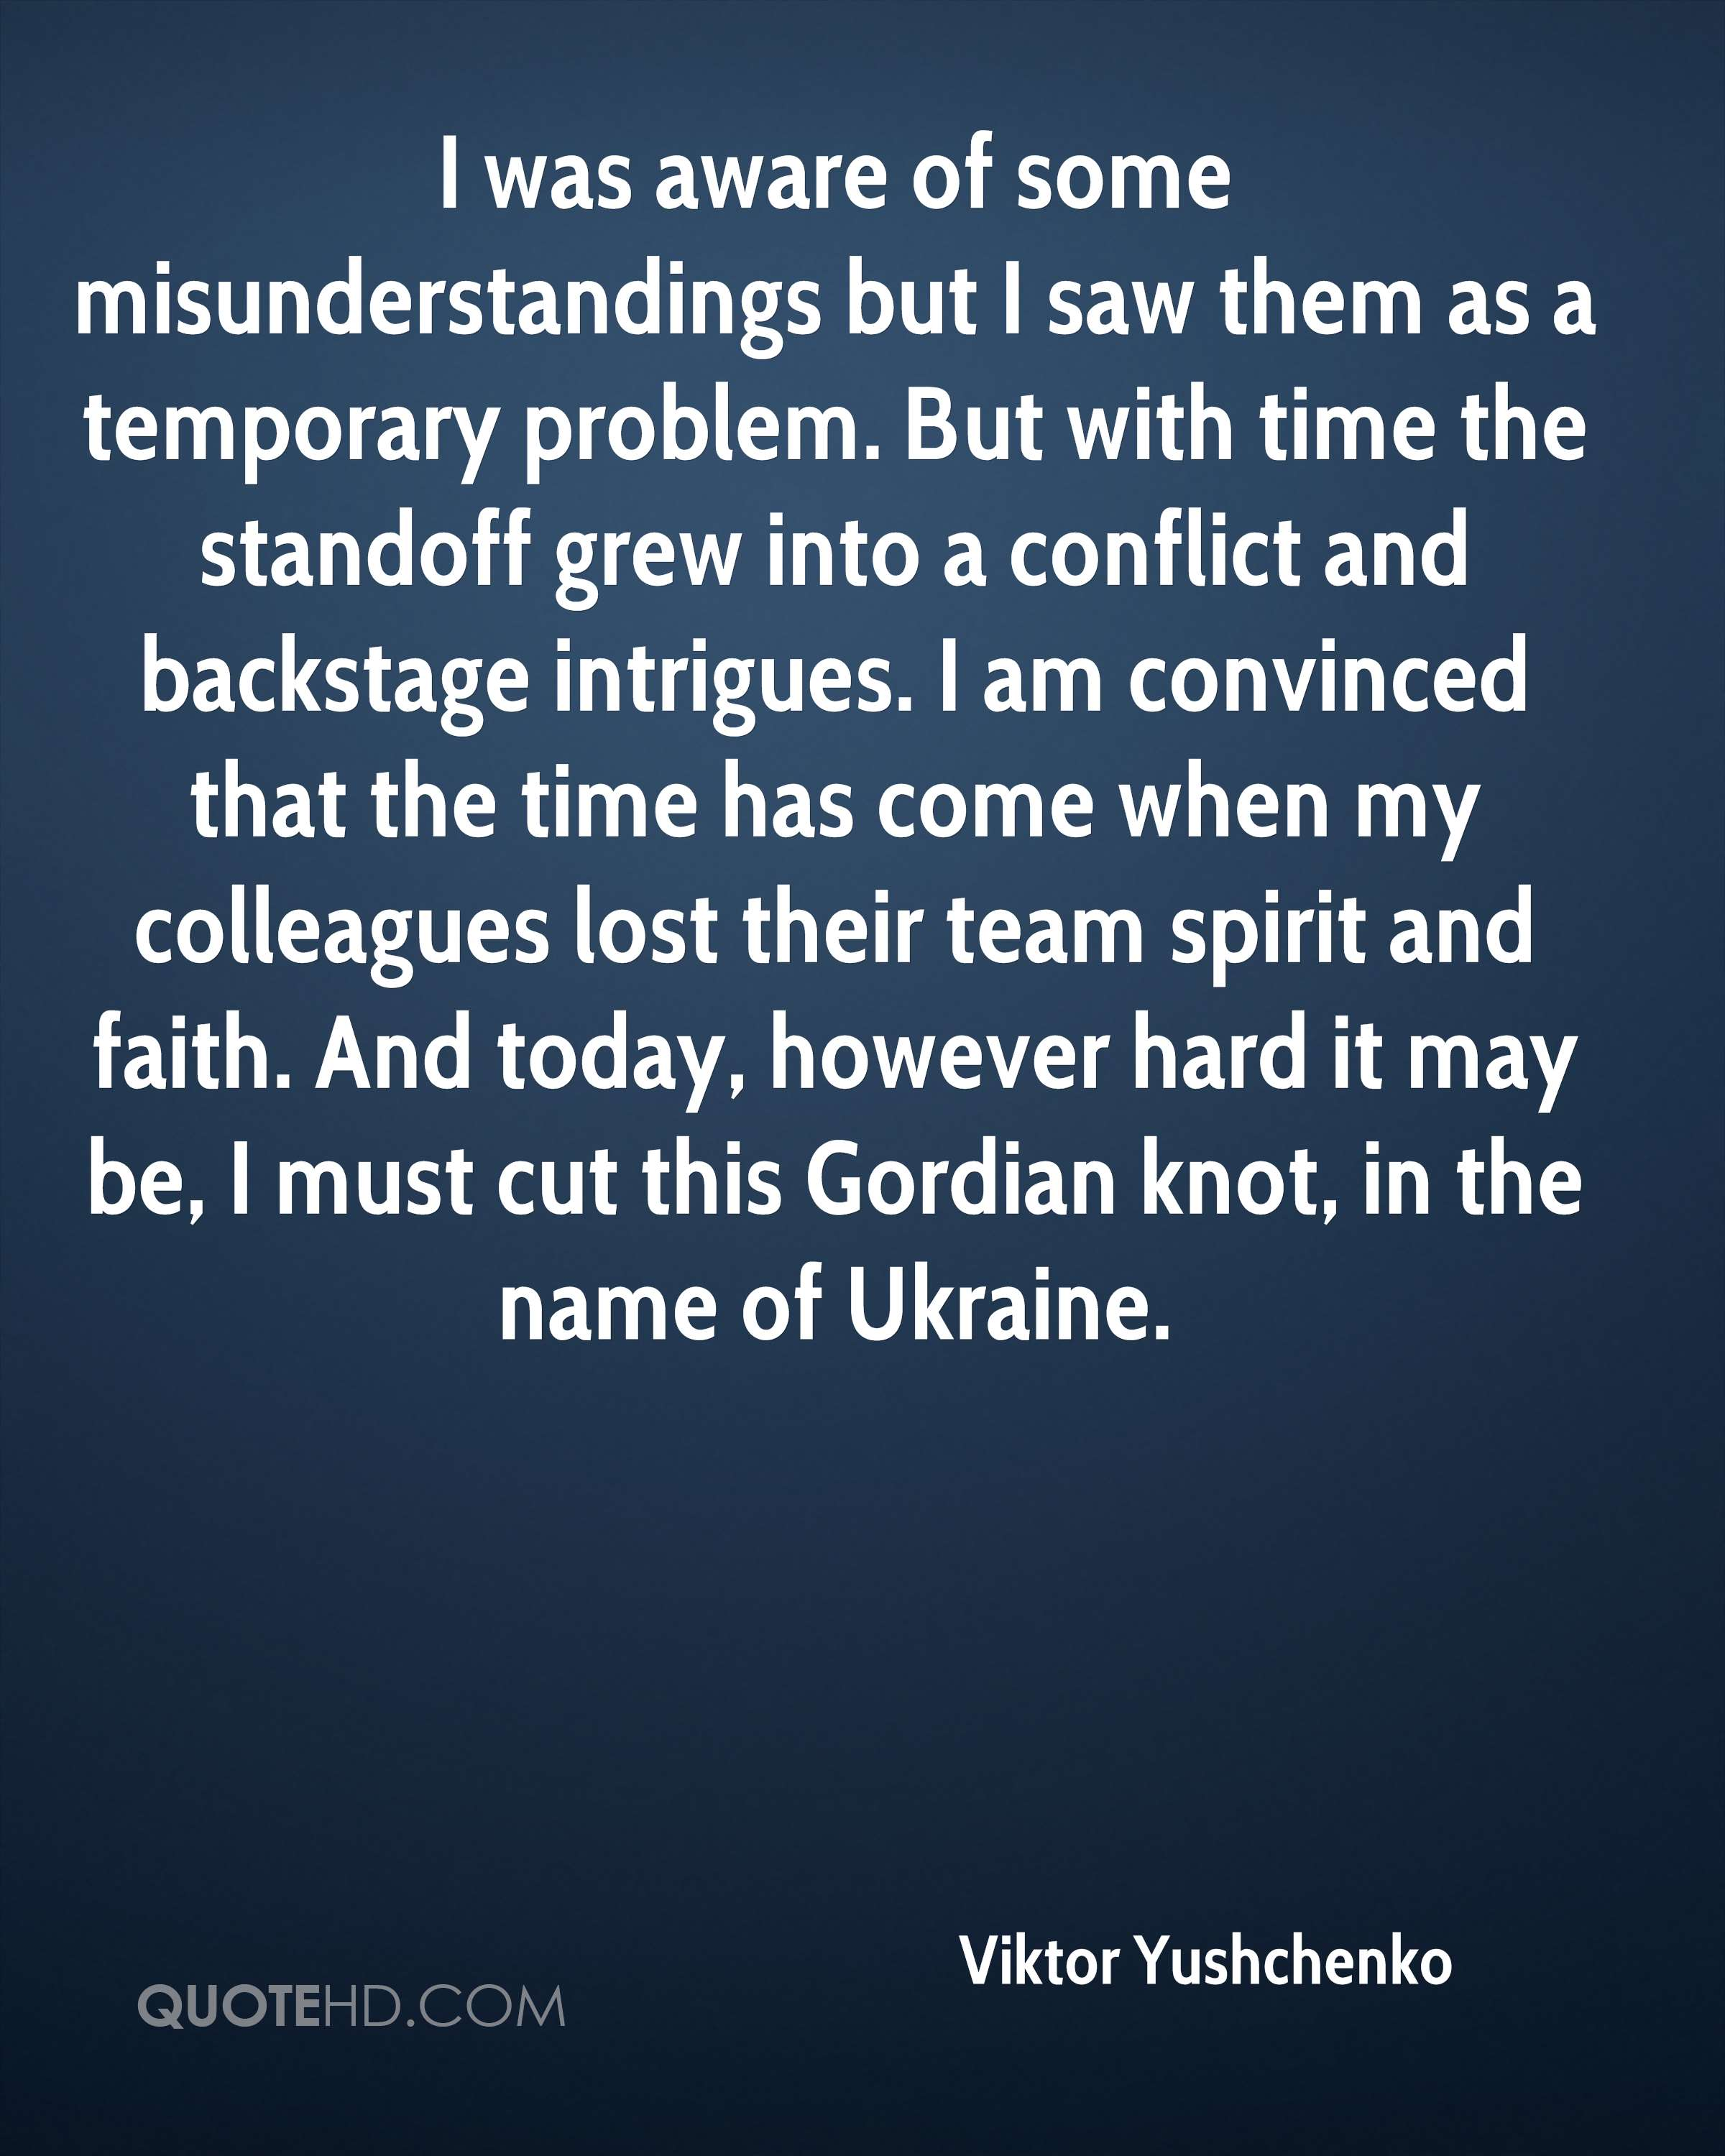 I was aware of some misunderstandings but I saw them as a temporary problem. But with time the standoff grew into a conflict and backstage intrigues. I am convinced that the time has come when my colleagues lost their team spirit and faith. And today, however hard it may be, I must cut this Gordian knot, in the name of Ukraine.